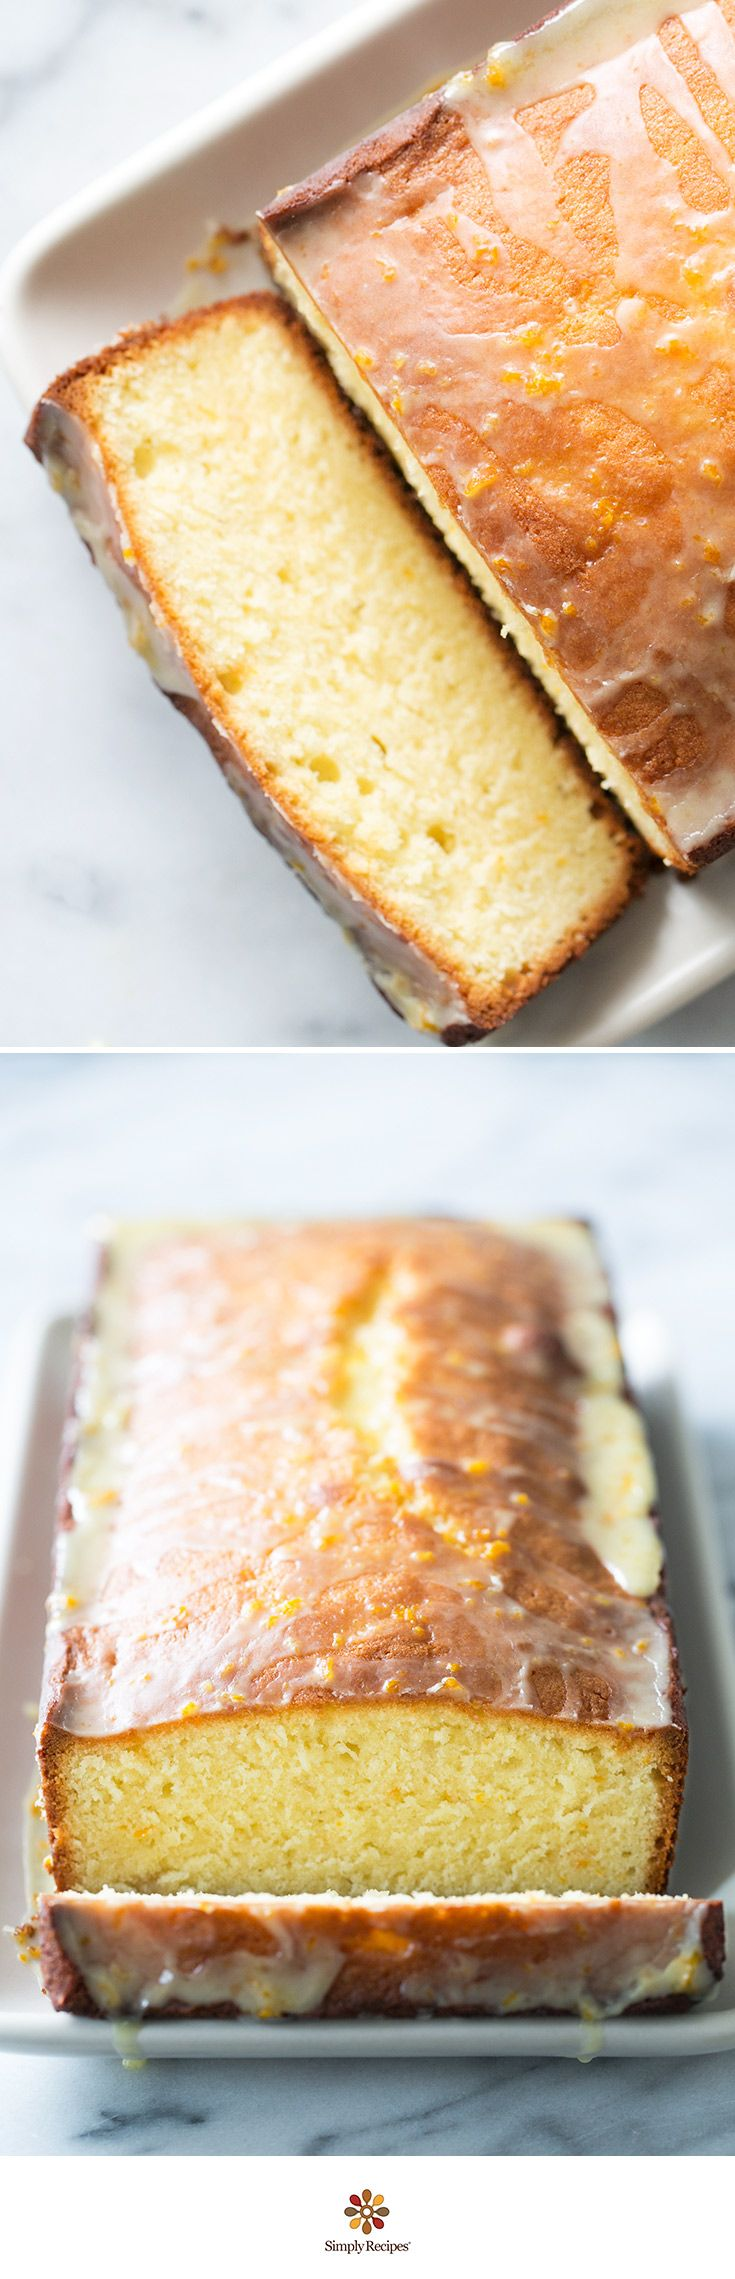 Almond Pound Cake with Orange Glaze. Almonds and orange are awesome together in this gorgeous pound cake! Made with almond paste, flour, Greek yogurt, sugar and orange zest. Even better the next day! ~ On SimplyRecipes.com